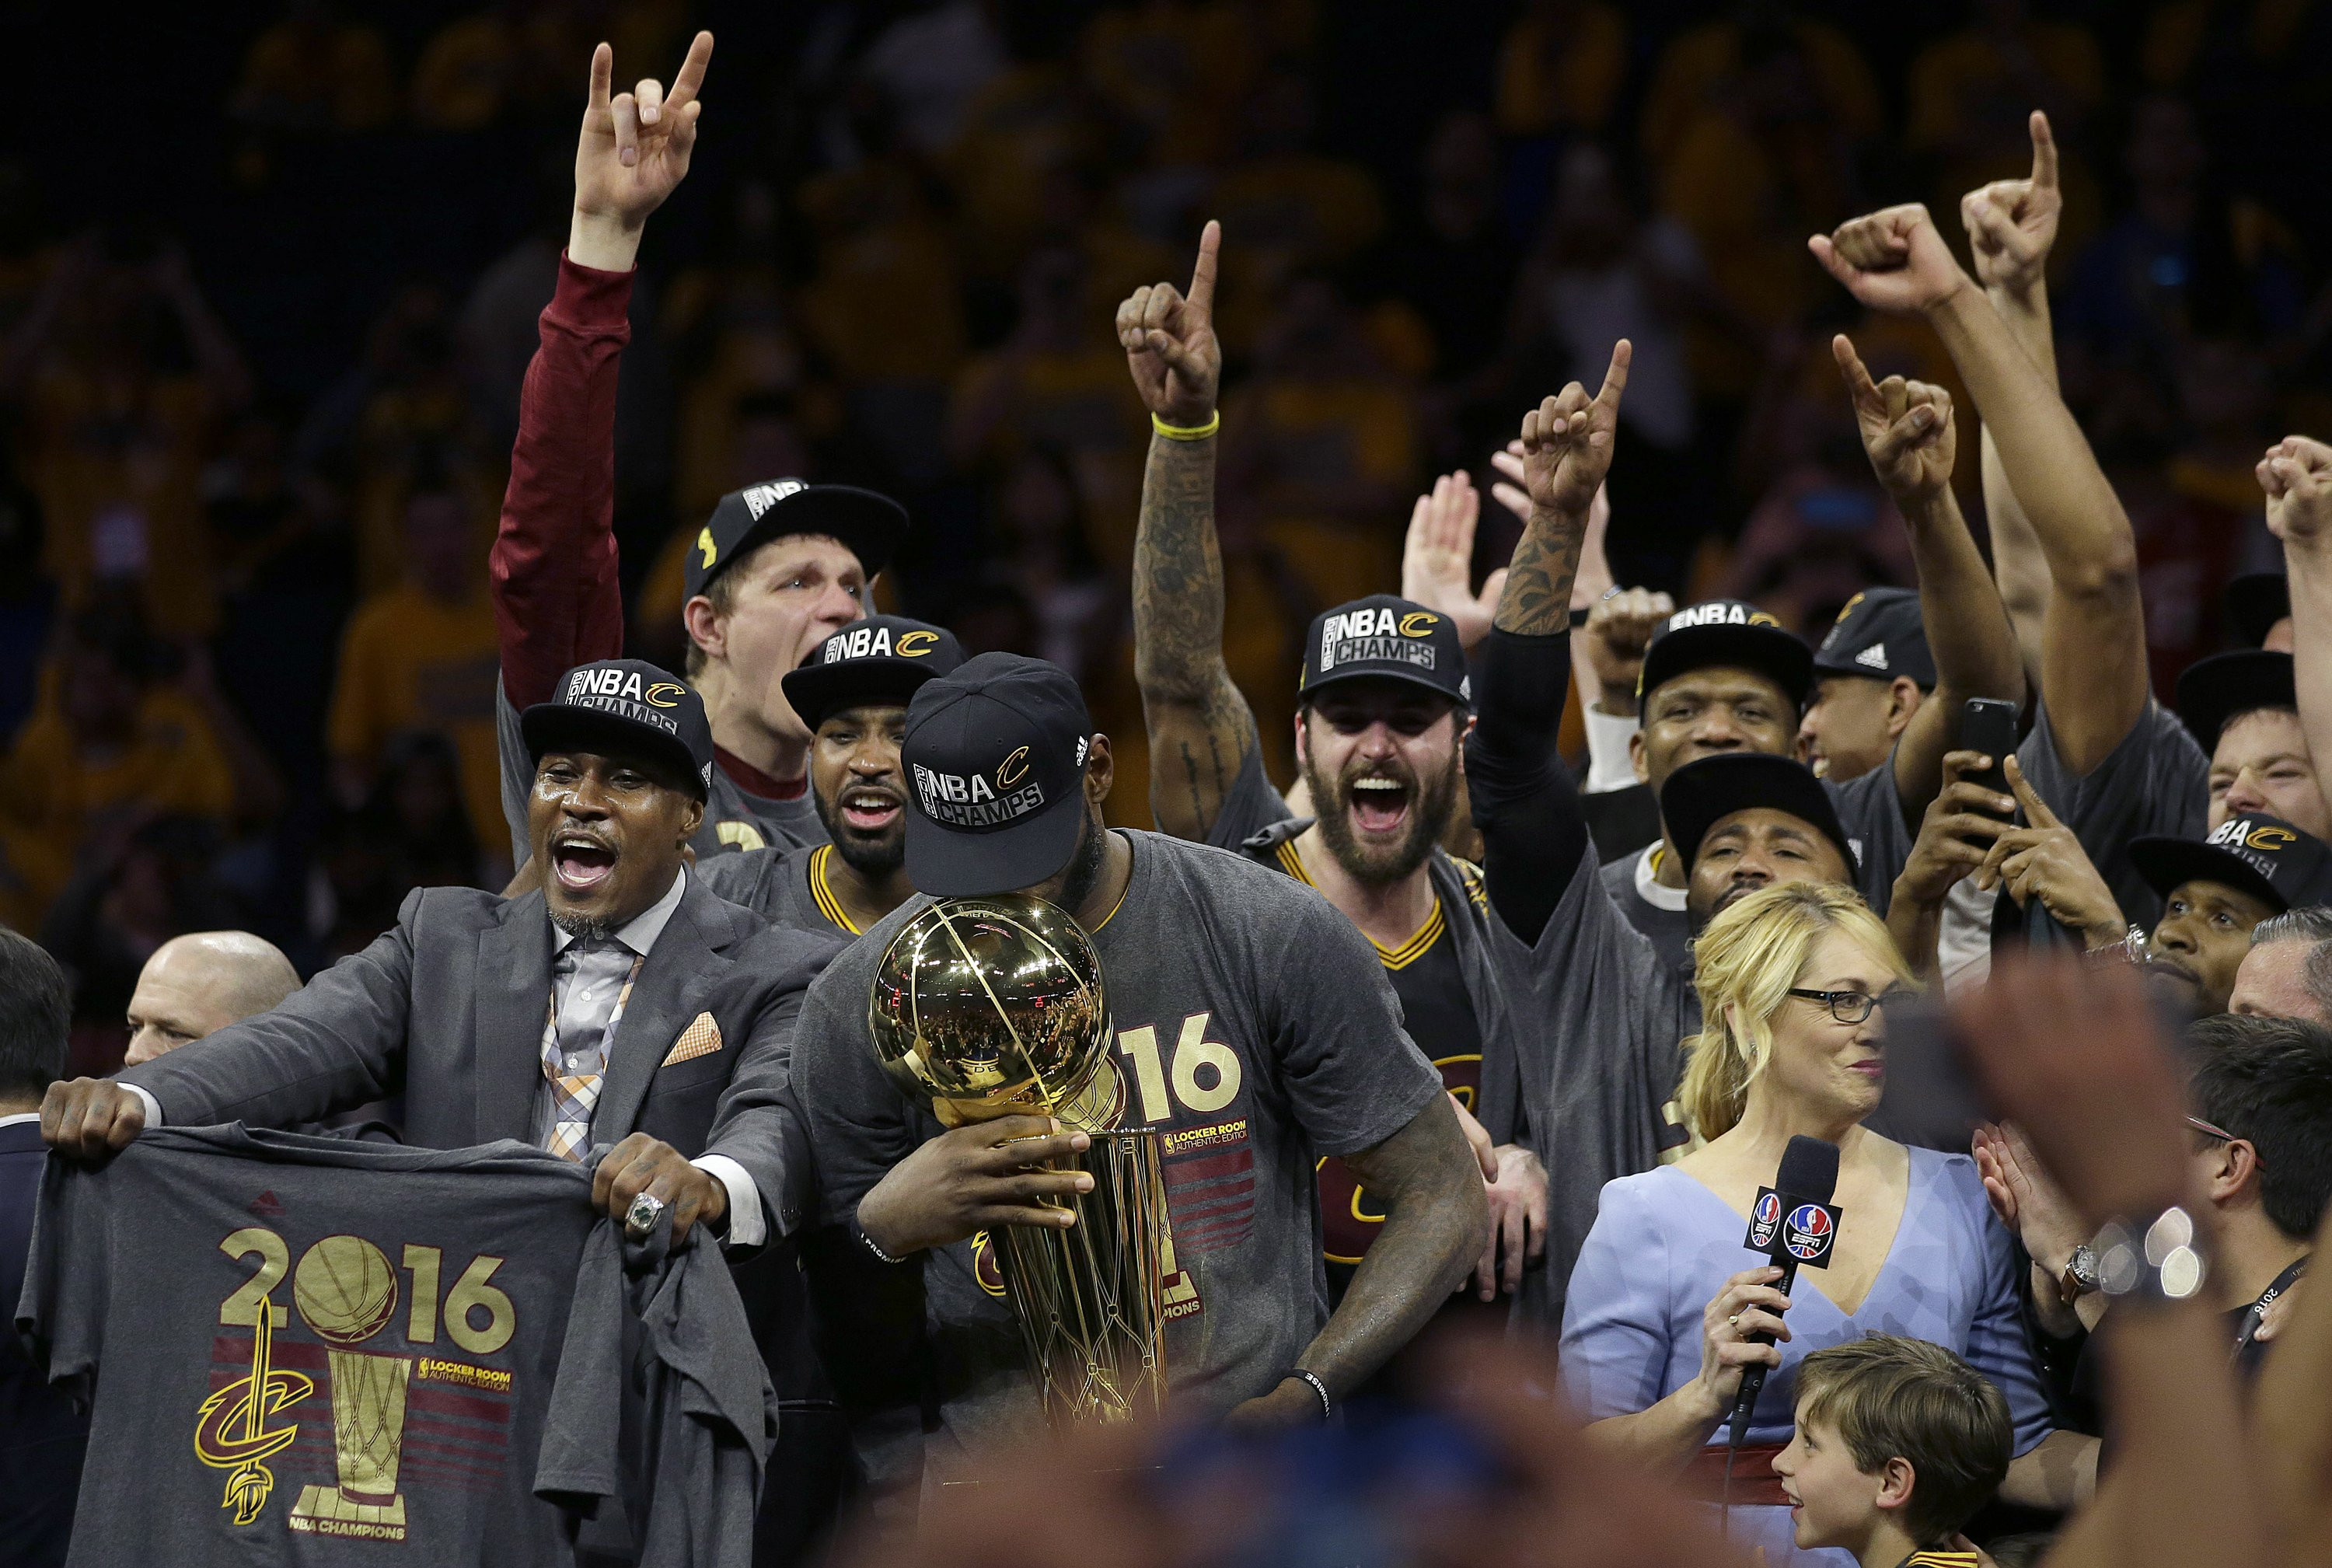 James And Cavaliers Win Thrilling Nba Finals Game 7 93 89